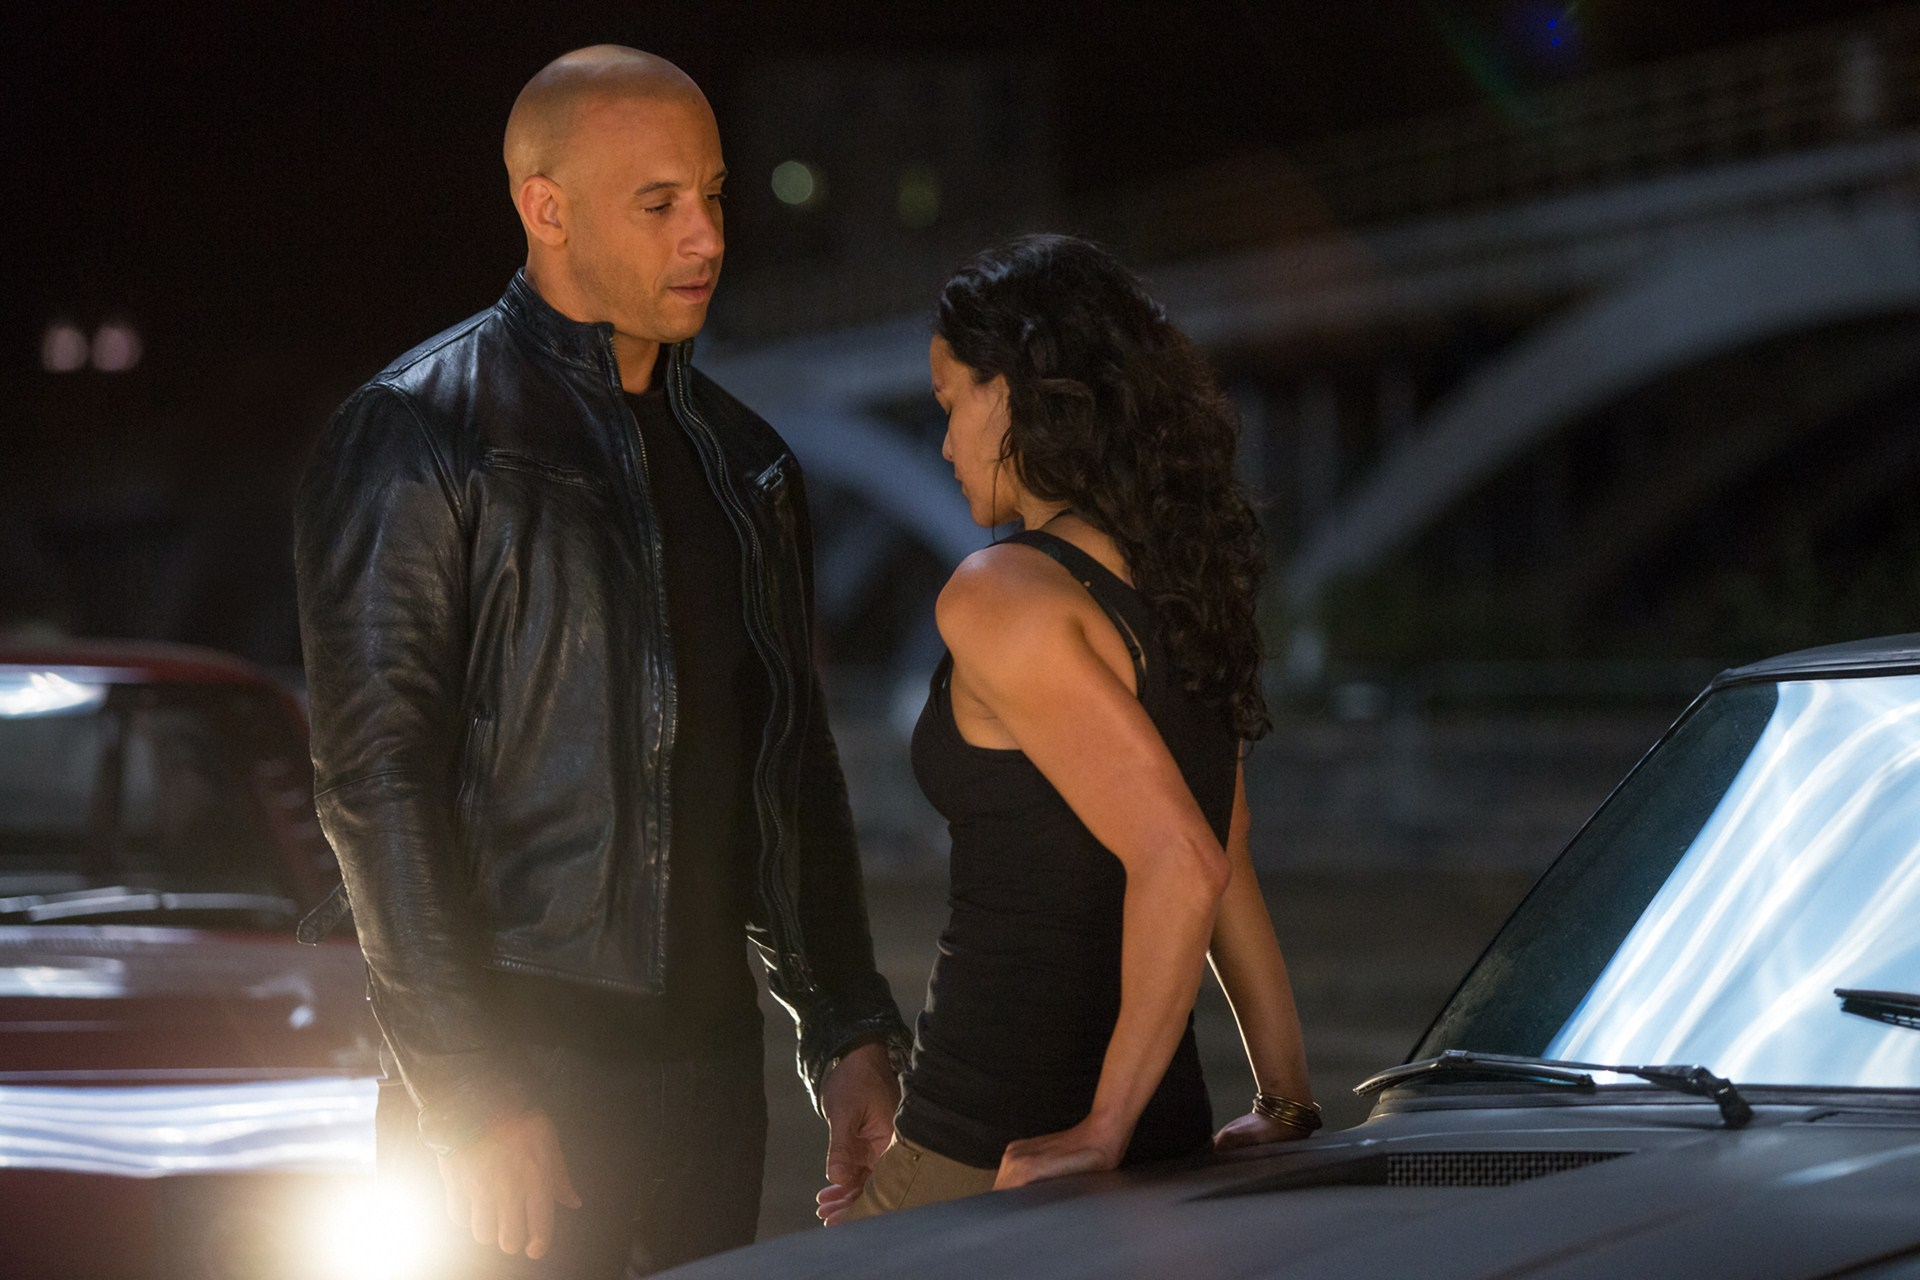 Furious 7 Toretto And Letty Love HD Wallpaper   Stylish HD Wallpapers 1920x1280